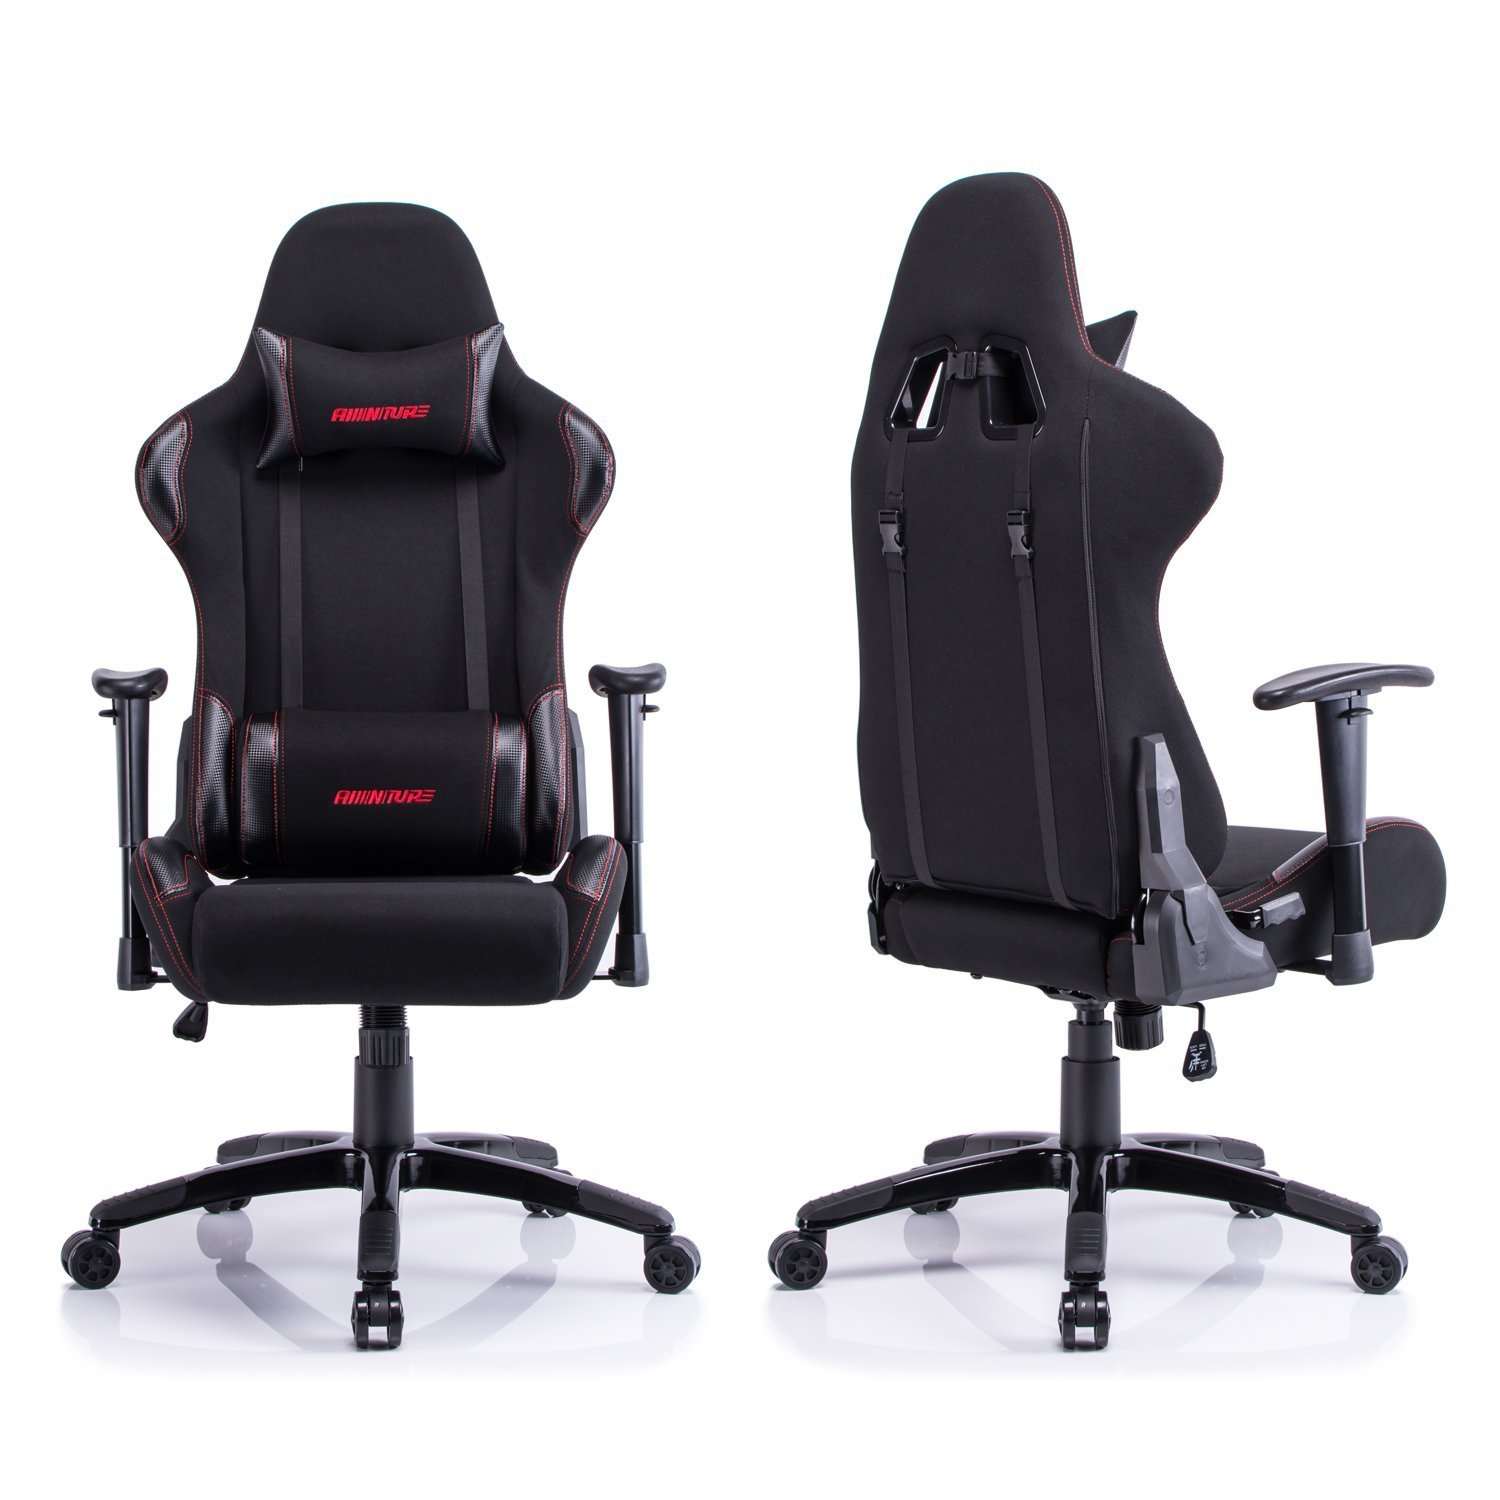 Amazon Aminiture Big and Tall Gaming Chair Red High Back Recliner Chair Fabric puter Chair Swivel fice Chair with Lumbar Support Kitchen &